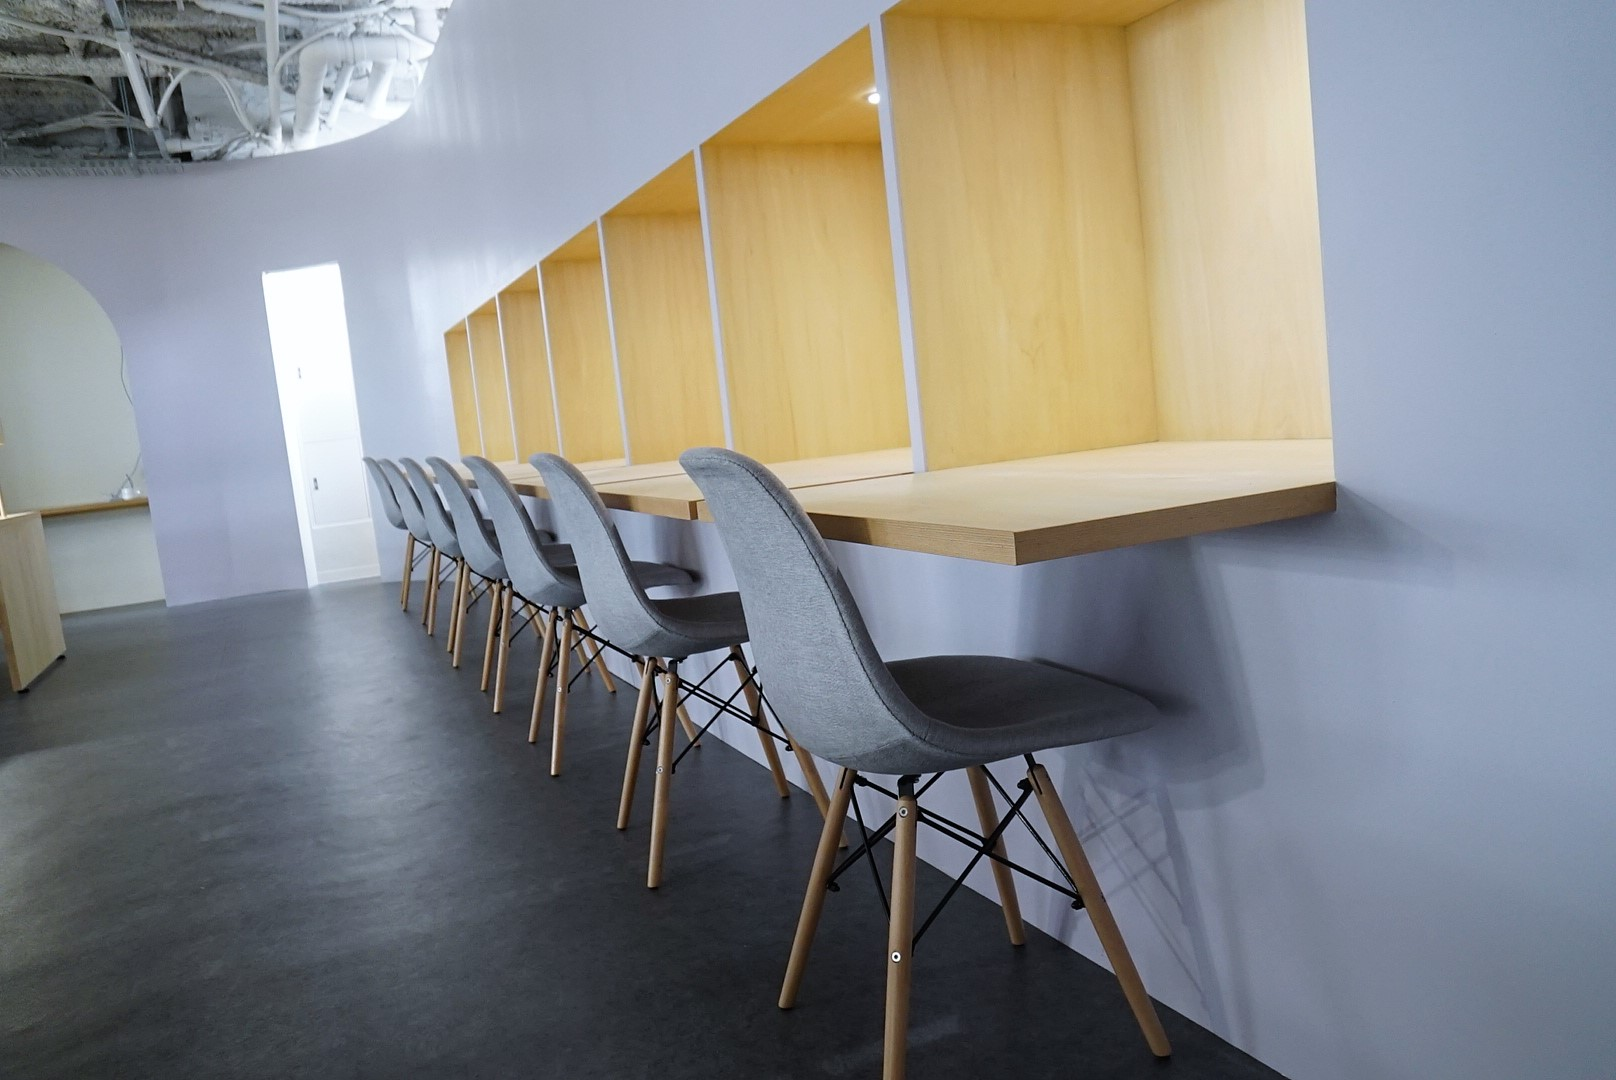 Dedicated Desks¥25,000 /Month* - This is your own fixed desk within the collaborative work space. Includes meeting room usage and lounge usage.*price per personWant to get to know us? Book a Tour!